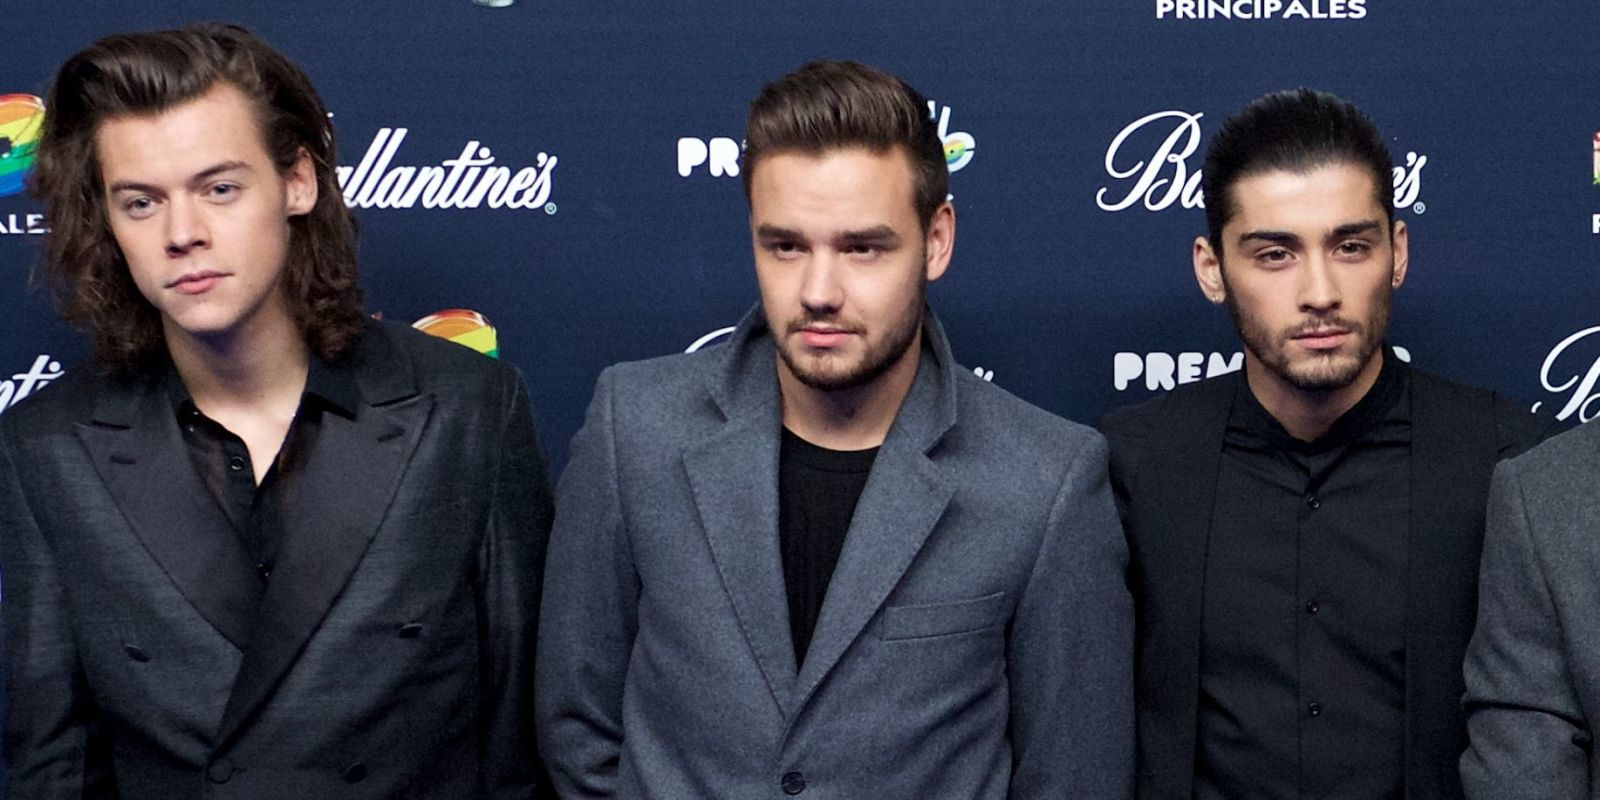 BRITs 2018 nominations set the stage for a 1D showdown